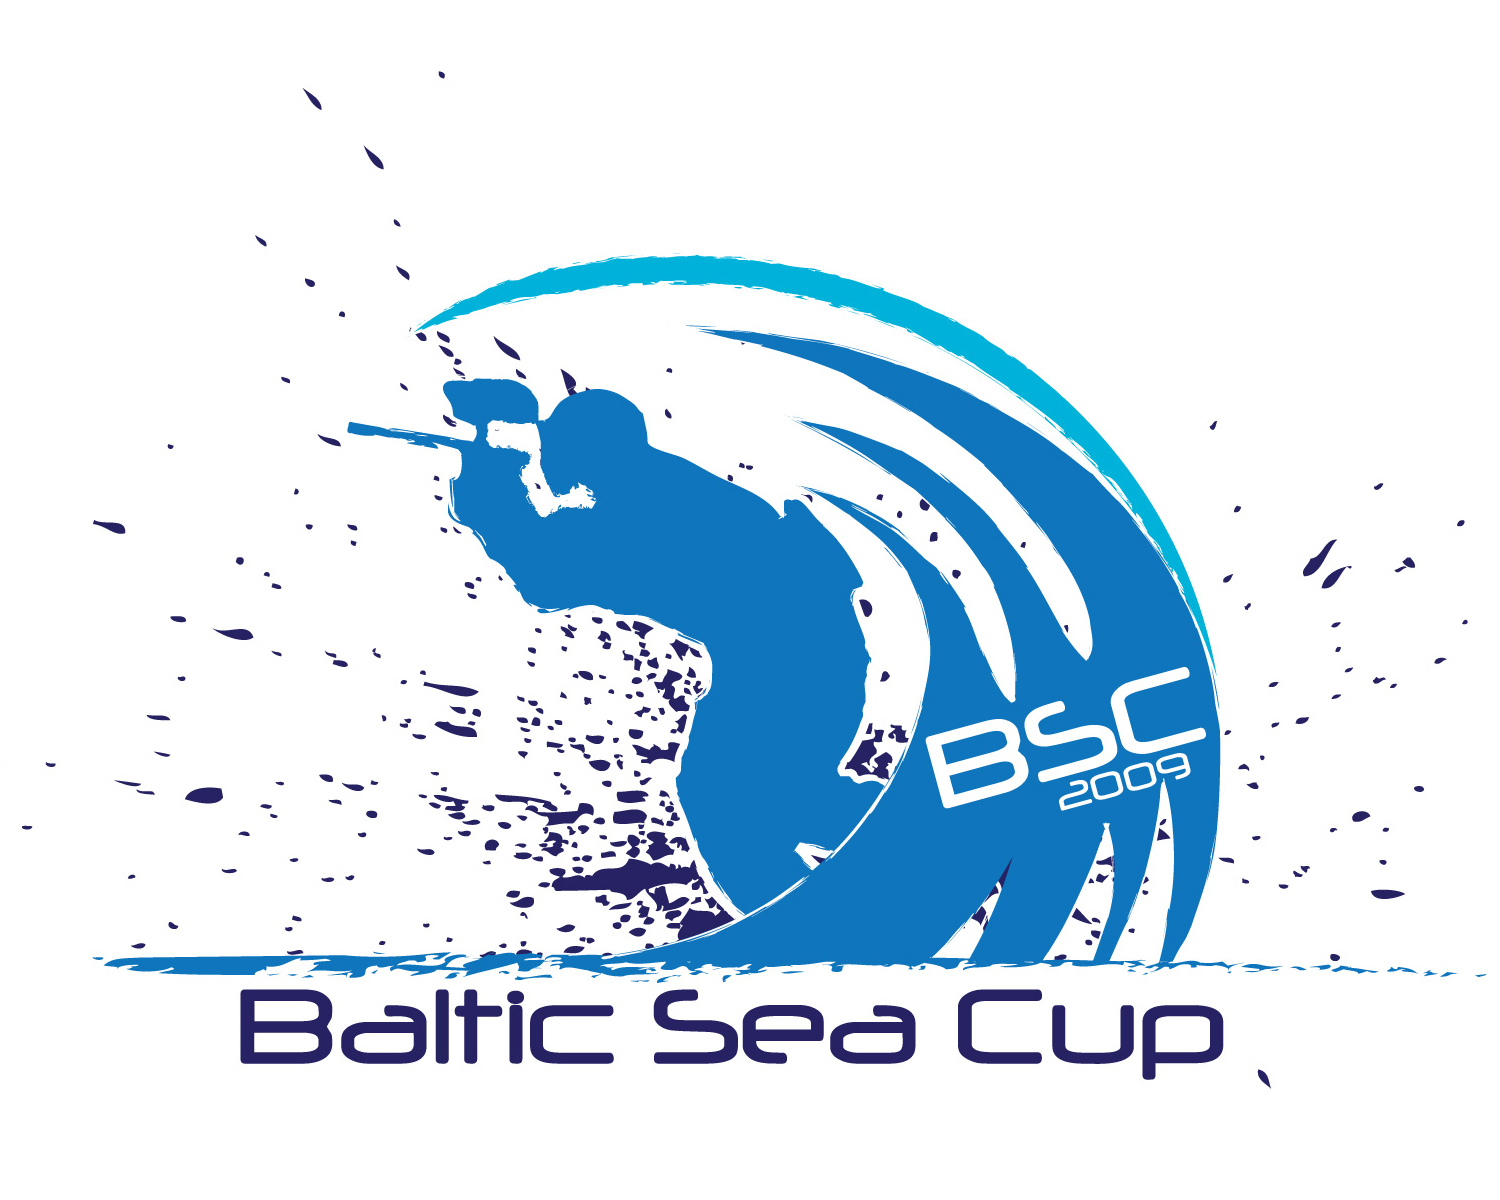 Baltic Sea Cup logo